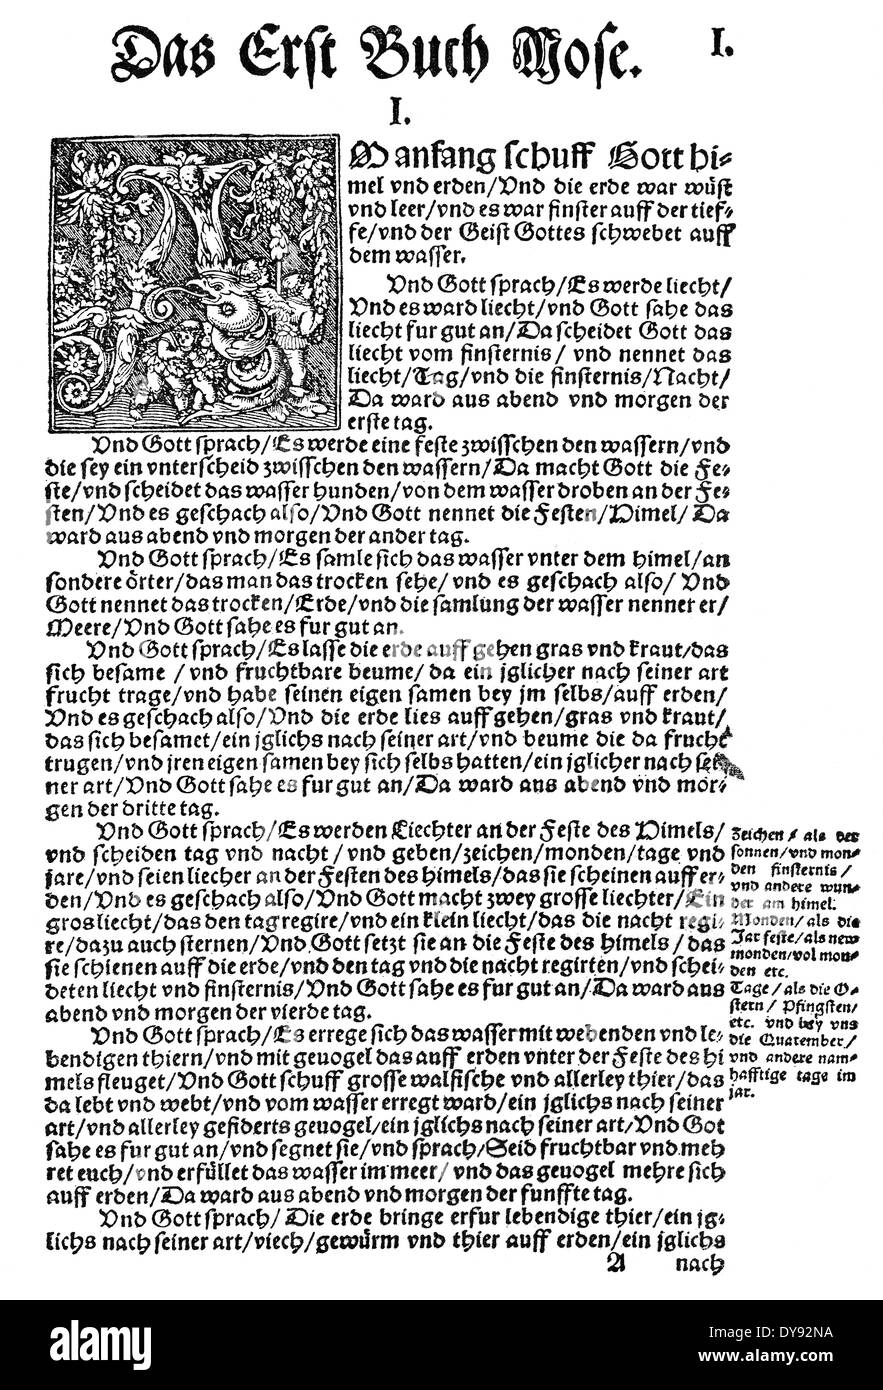 Facsimile, Print of the first page, Book of Genesis, 1534, bible translation by Martin Luther - Stock Image